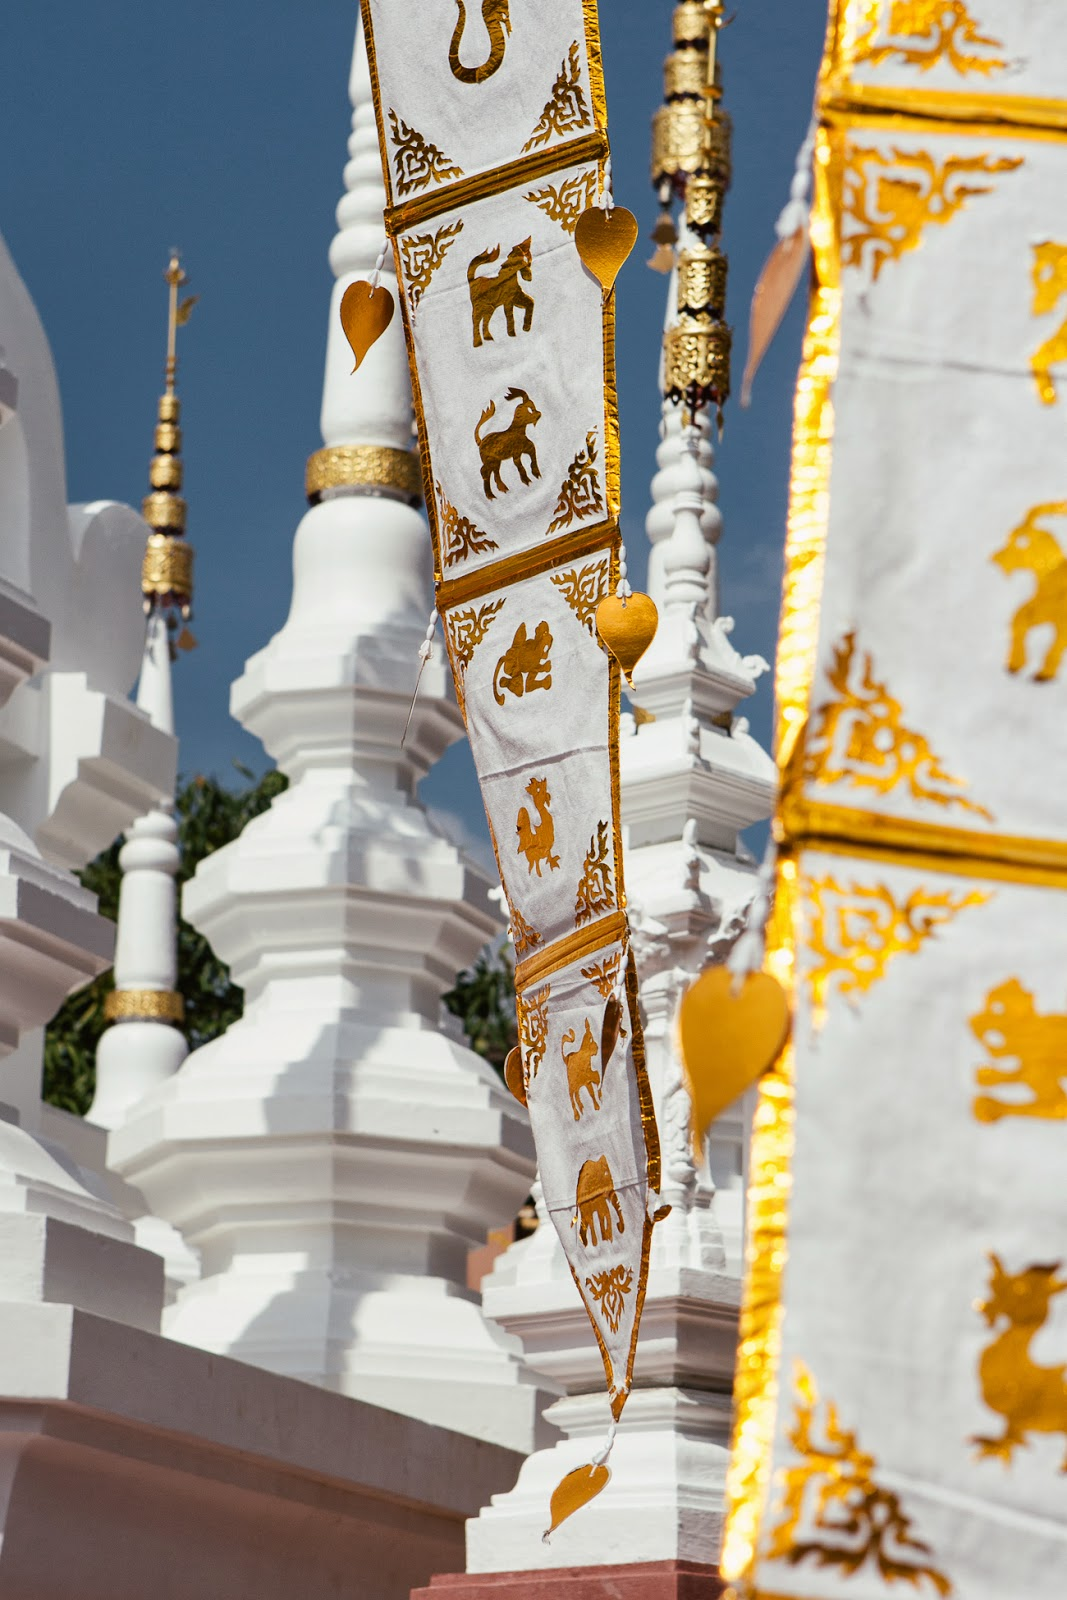 Chiang Mai - Wat Phra That Doi Suthep / blog.jchongstudio.com